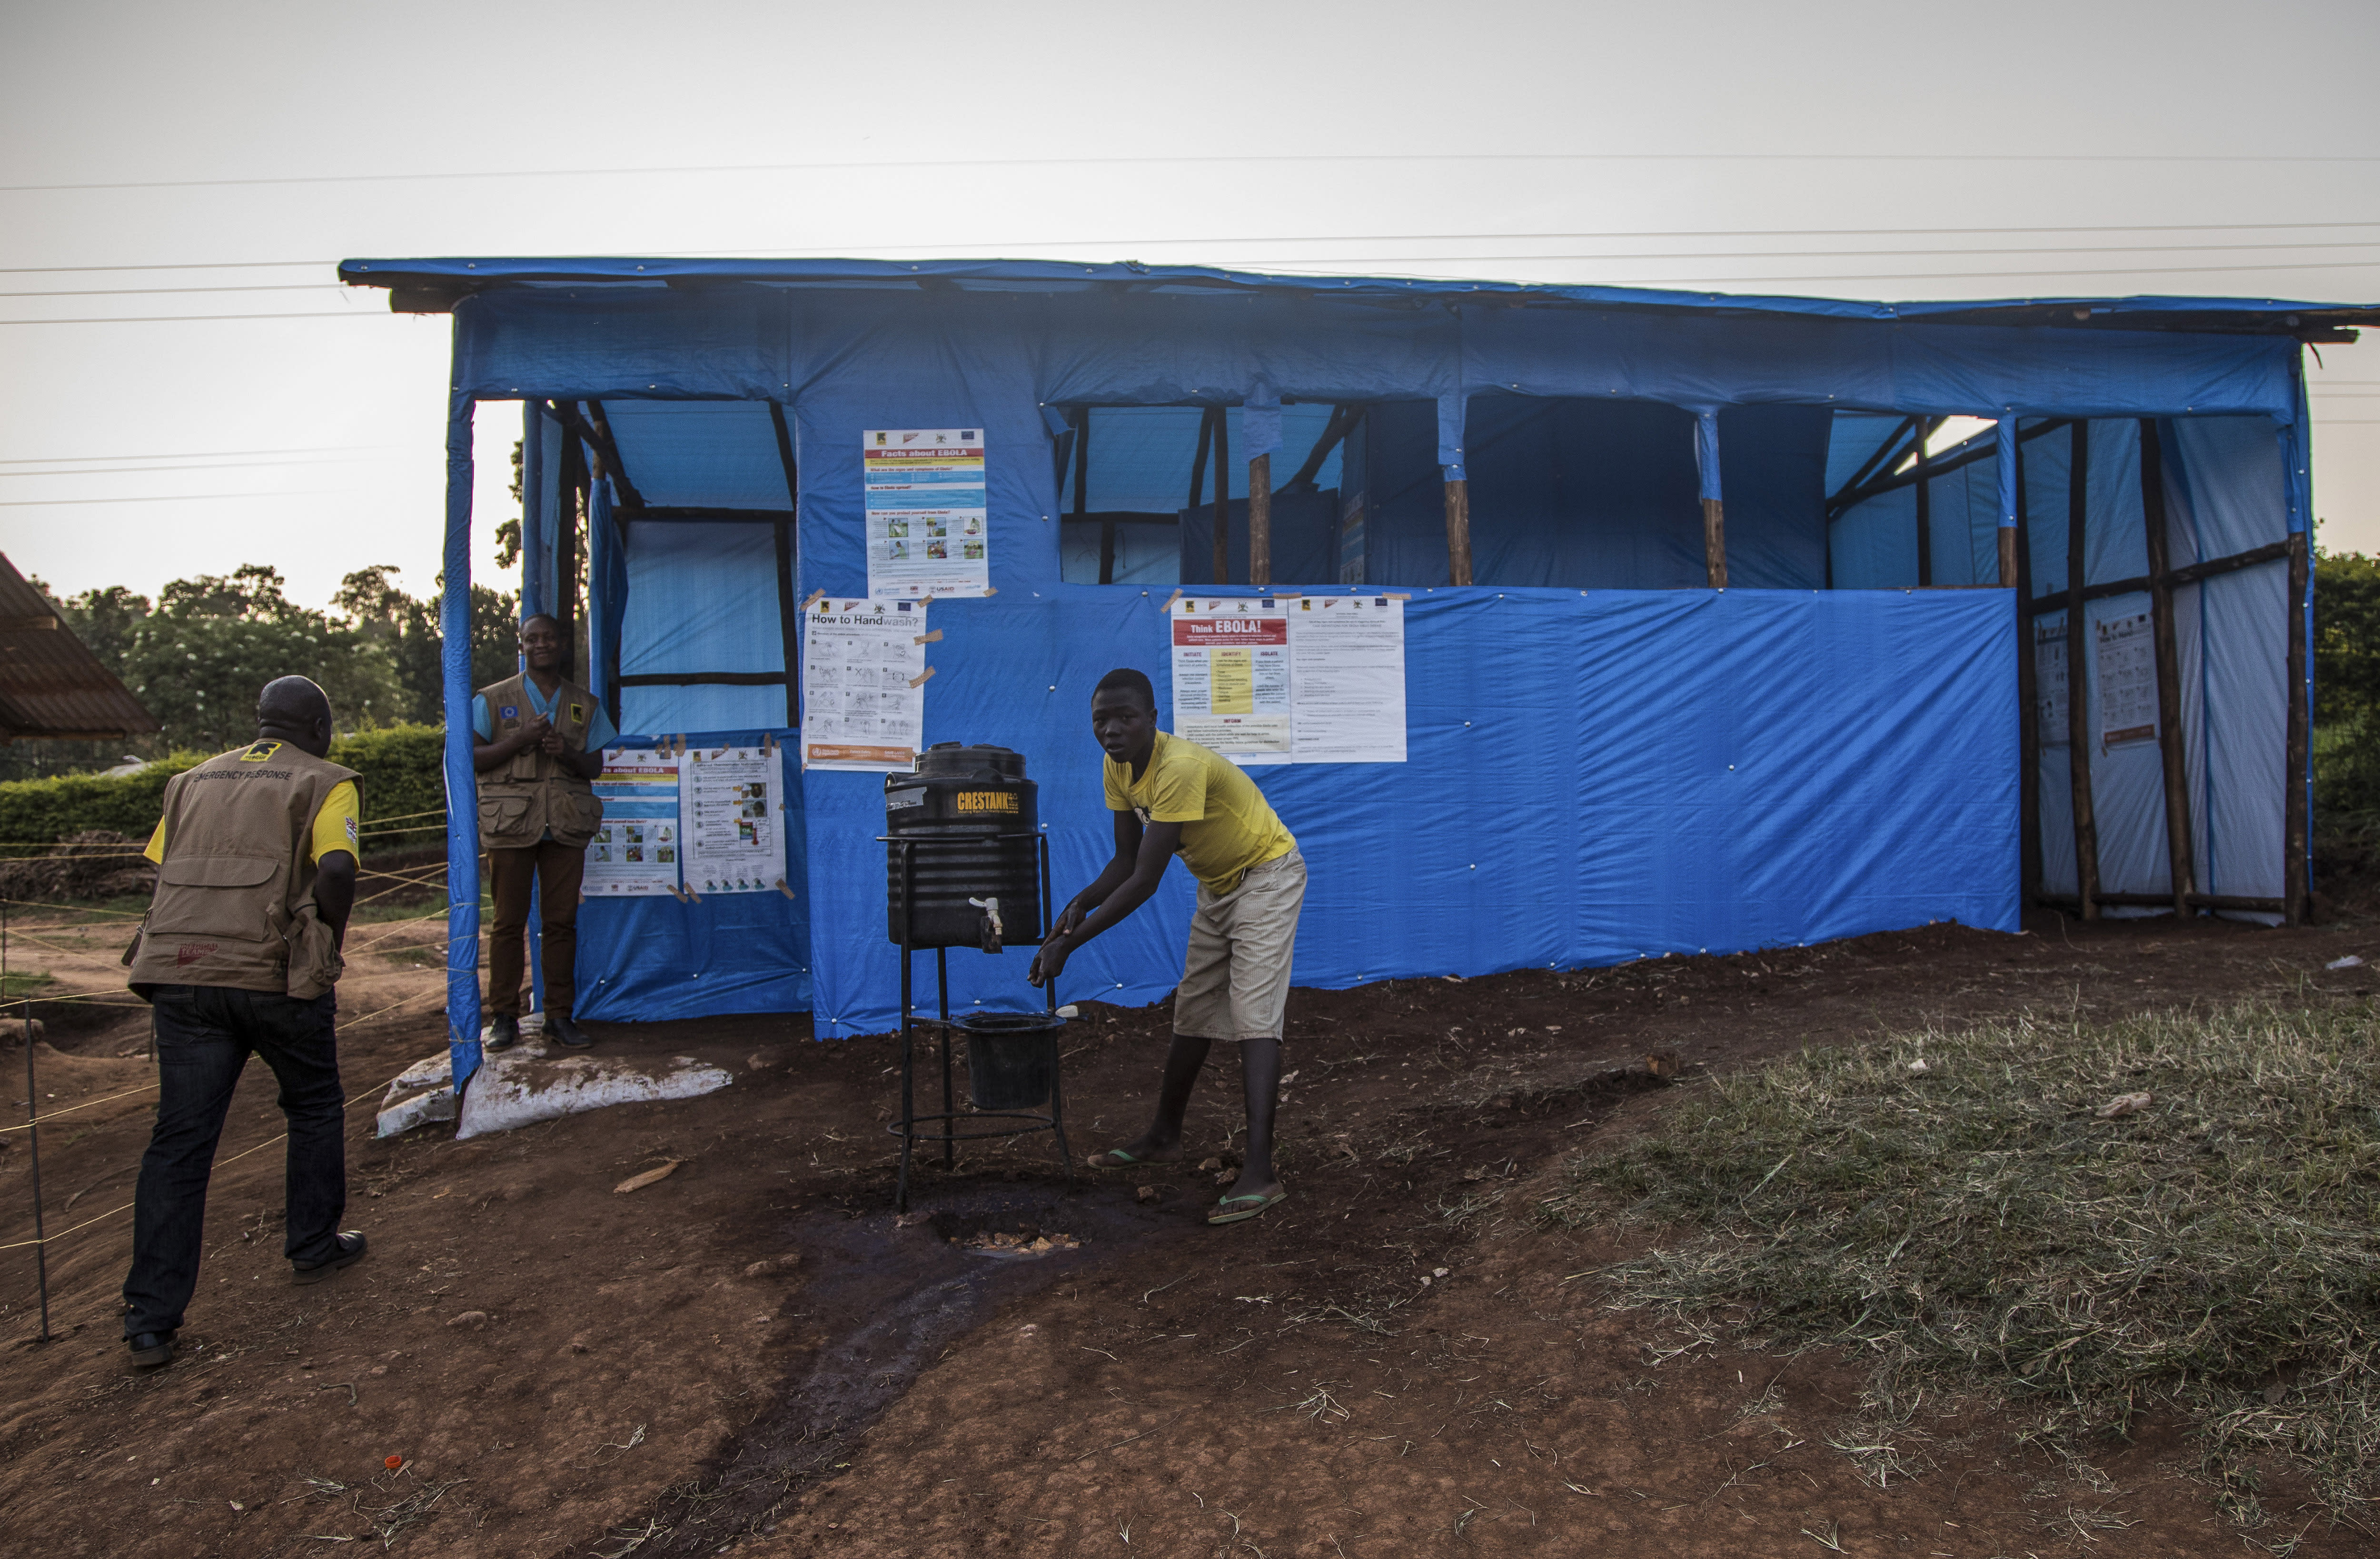 This photo released by the International Rescue Committee (IRC) shows a Congolese refugee boy washing his hands before entering one of the medical tents used for evaluating newly arrived Congolese for potential symptoms of Ebola, at the Kyaka refugee settlement in western Uganda Wednesday, June 12, 2019. A 5-year-old boy in Uganda vomiting blood became the first cross-border victim in the current Ebola outbreak on Wednesday, while his 3-year-old brother and grandmother tested positive for the disease that has killed nearly 1,400 people in Congo. (Kellie Ryan/International Rescue Committee via AP)